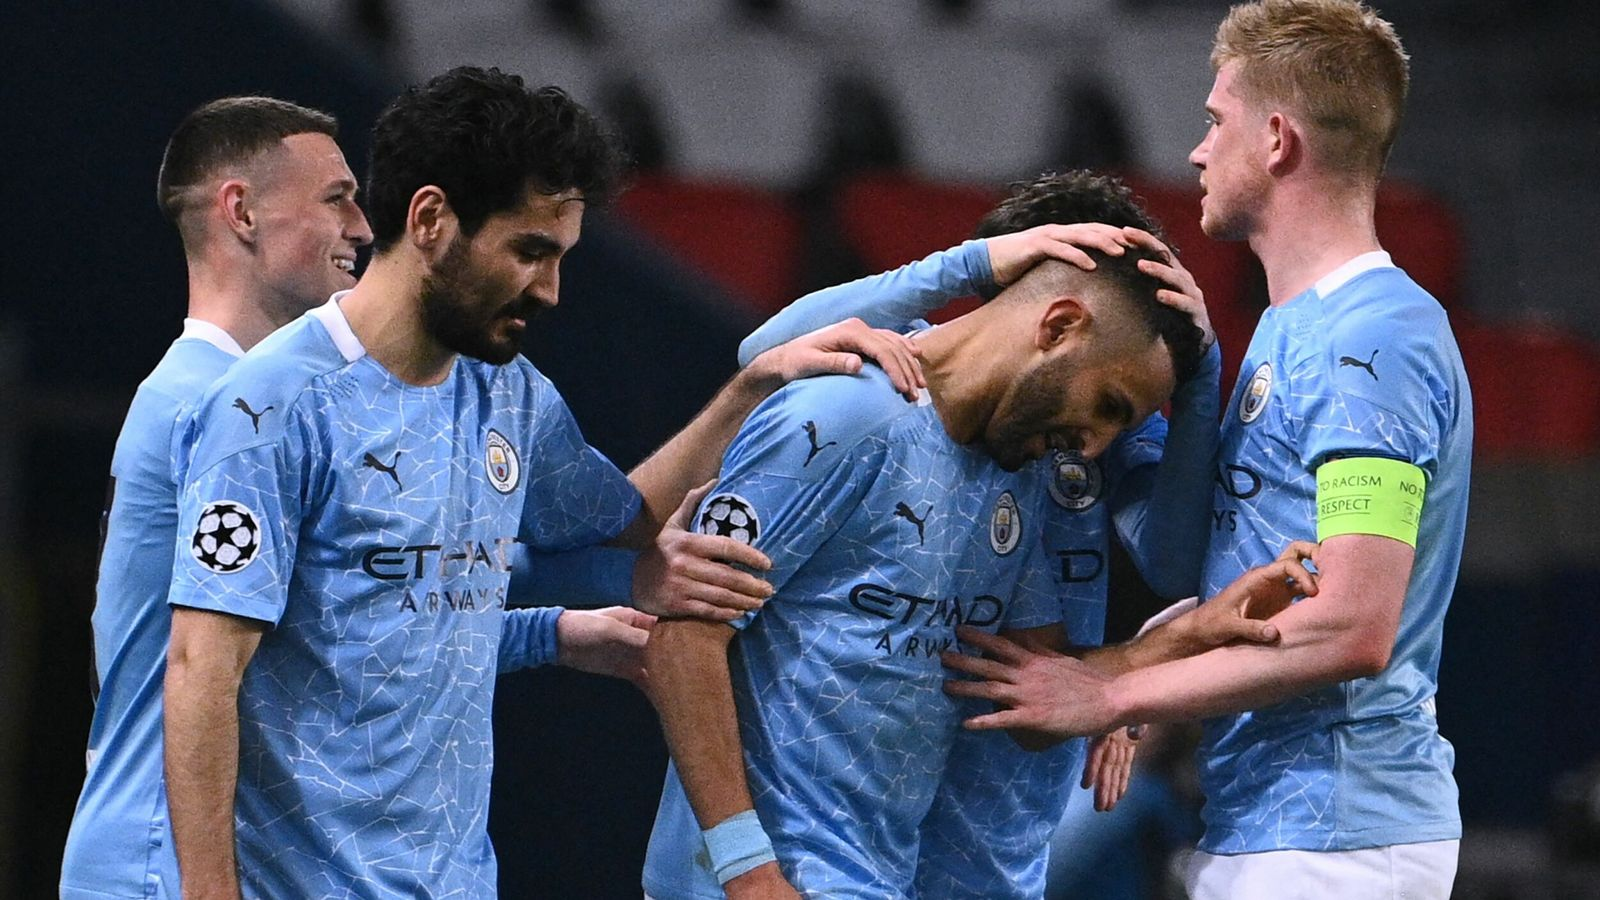 Psg 1 2 Man City How Pep Guardiola S Team Passed The Test In Paris With Their Deserved Second Half Comeback Football News Sky Sports